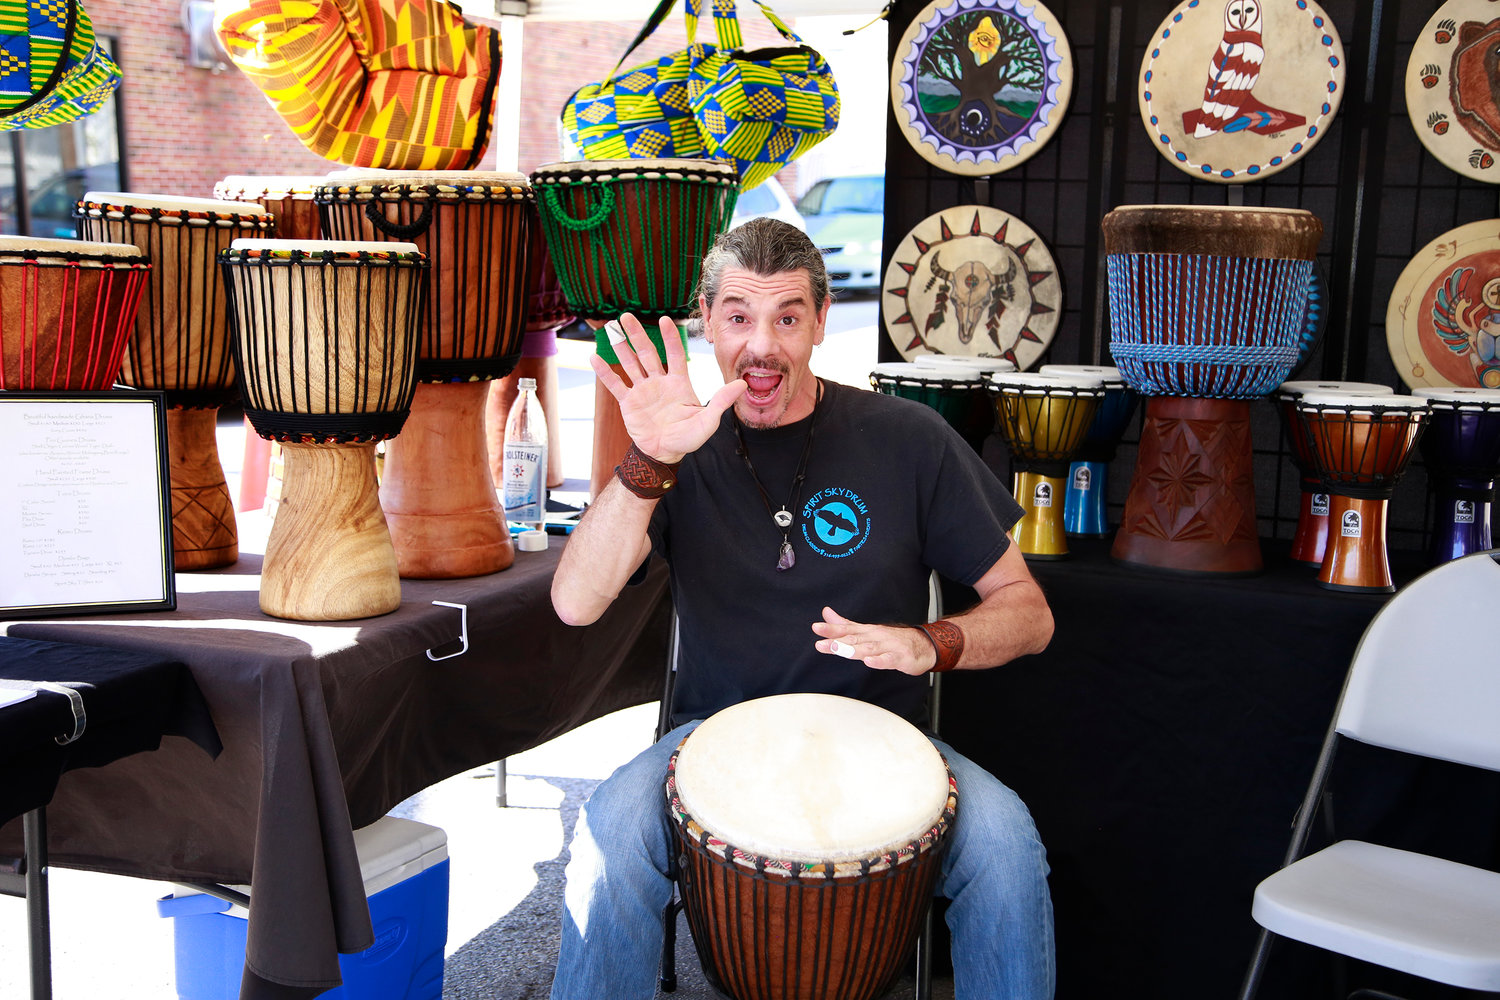 George Schultze of Spirit Sky Drum was one of the many vendors present at 2018's Community Fest.